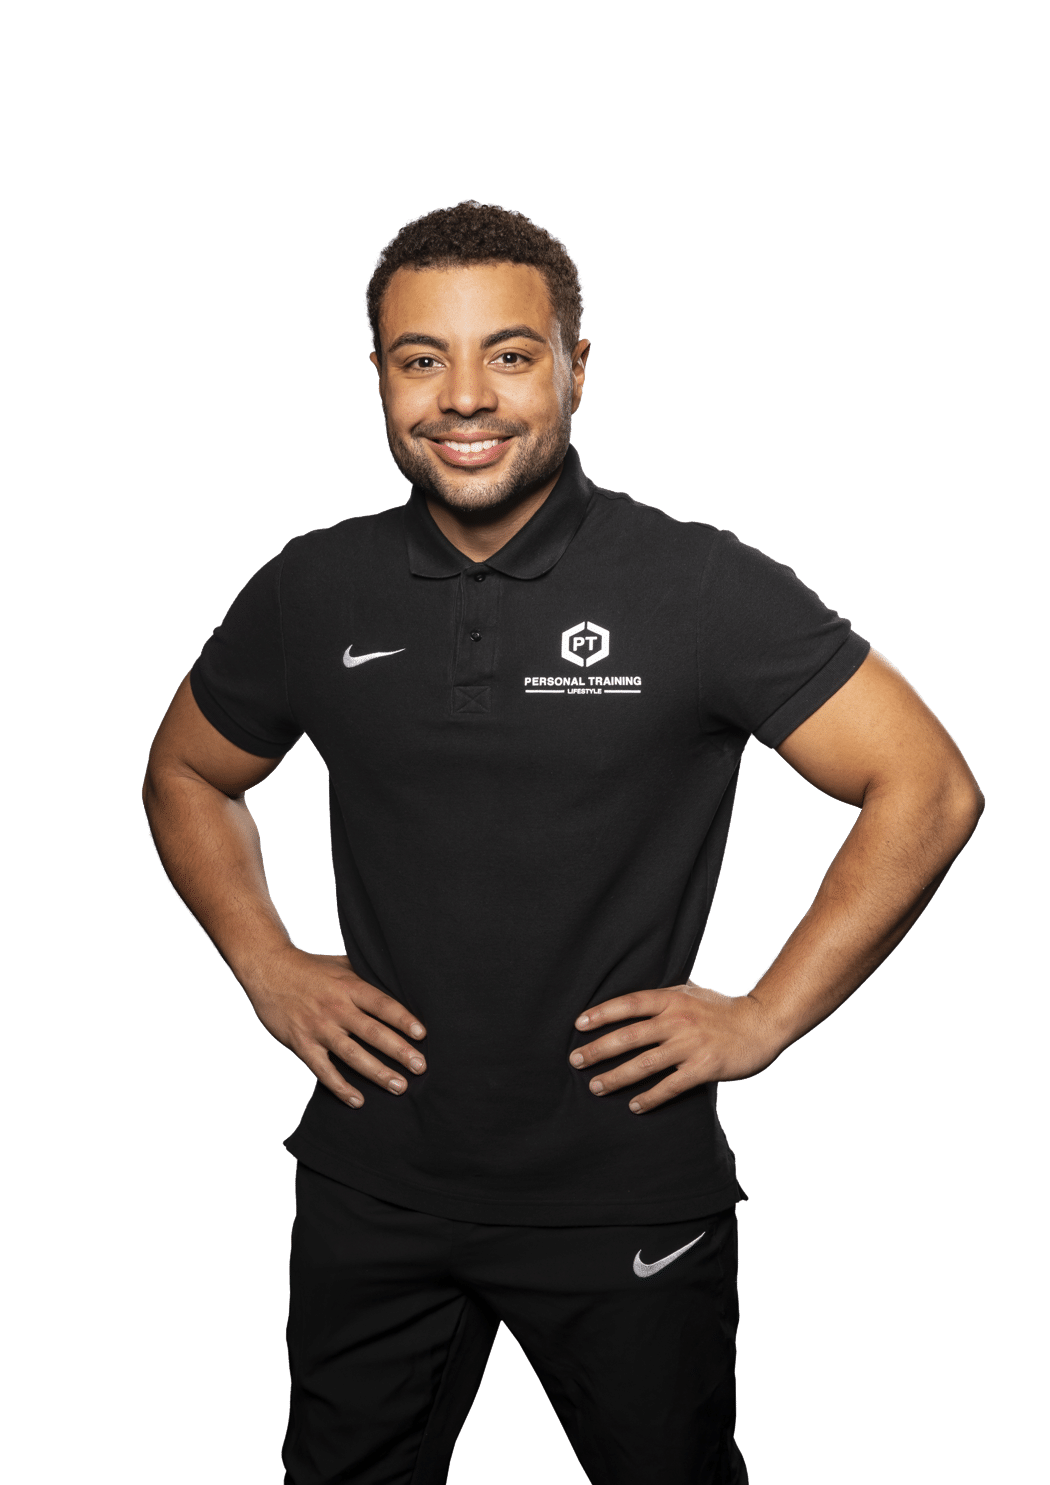 Personaltrainer Marvin Okorom Body Culture Darmstadt